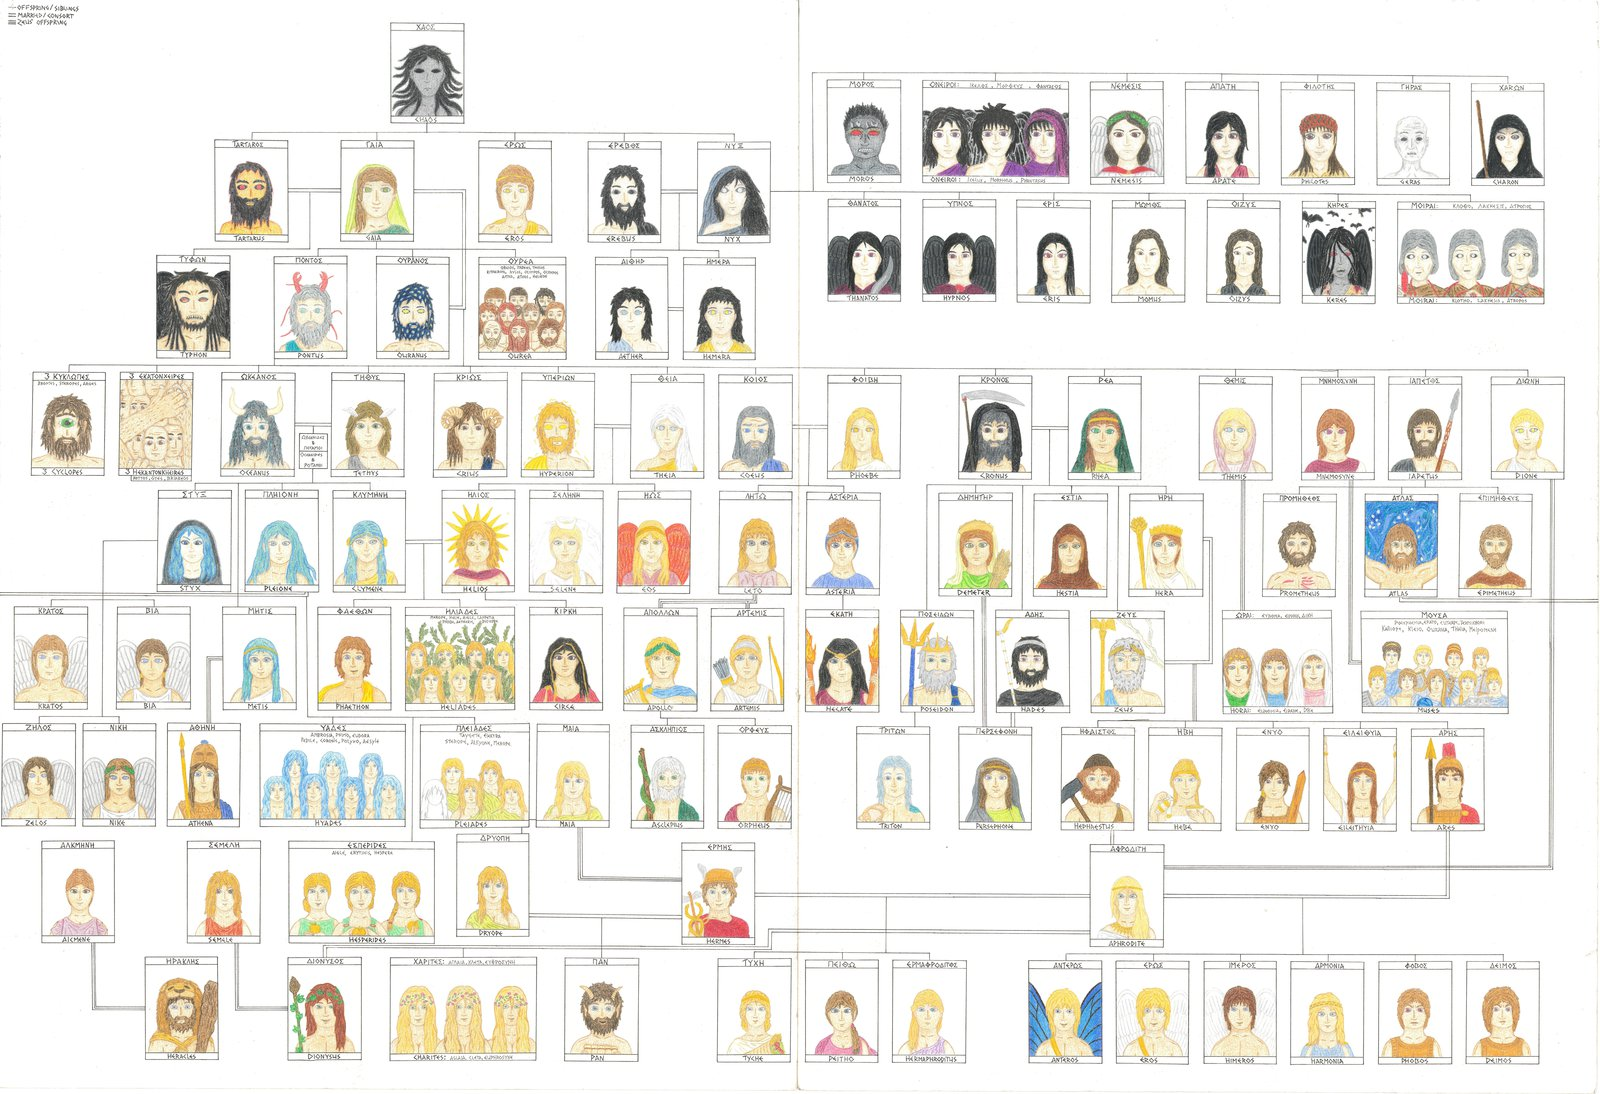 Family Tree of the Greek Gods by FoxReynaert on DeviantArt.